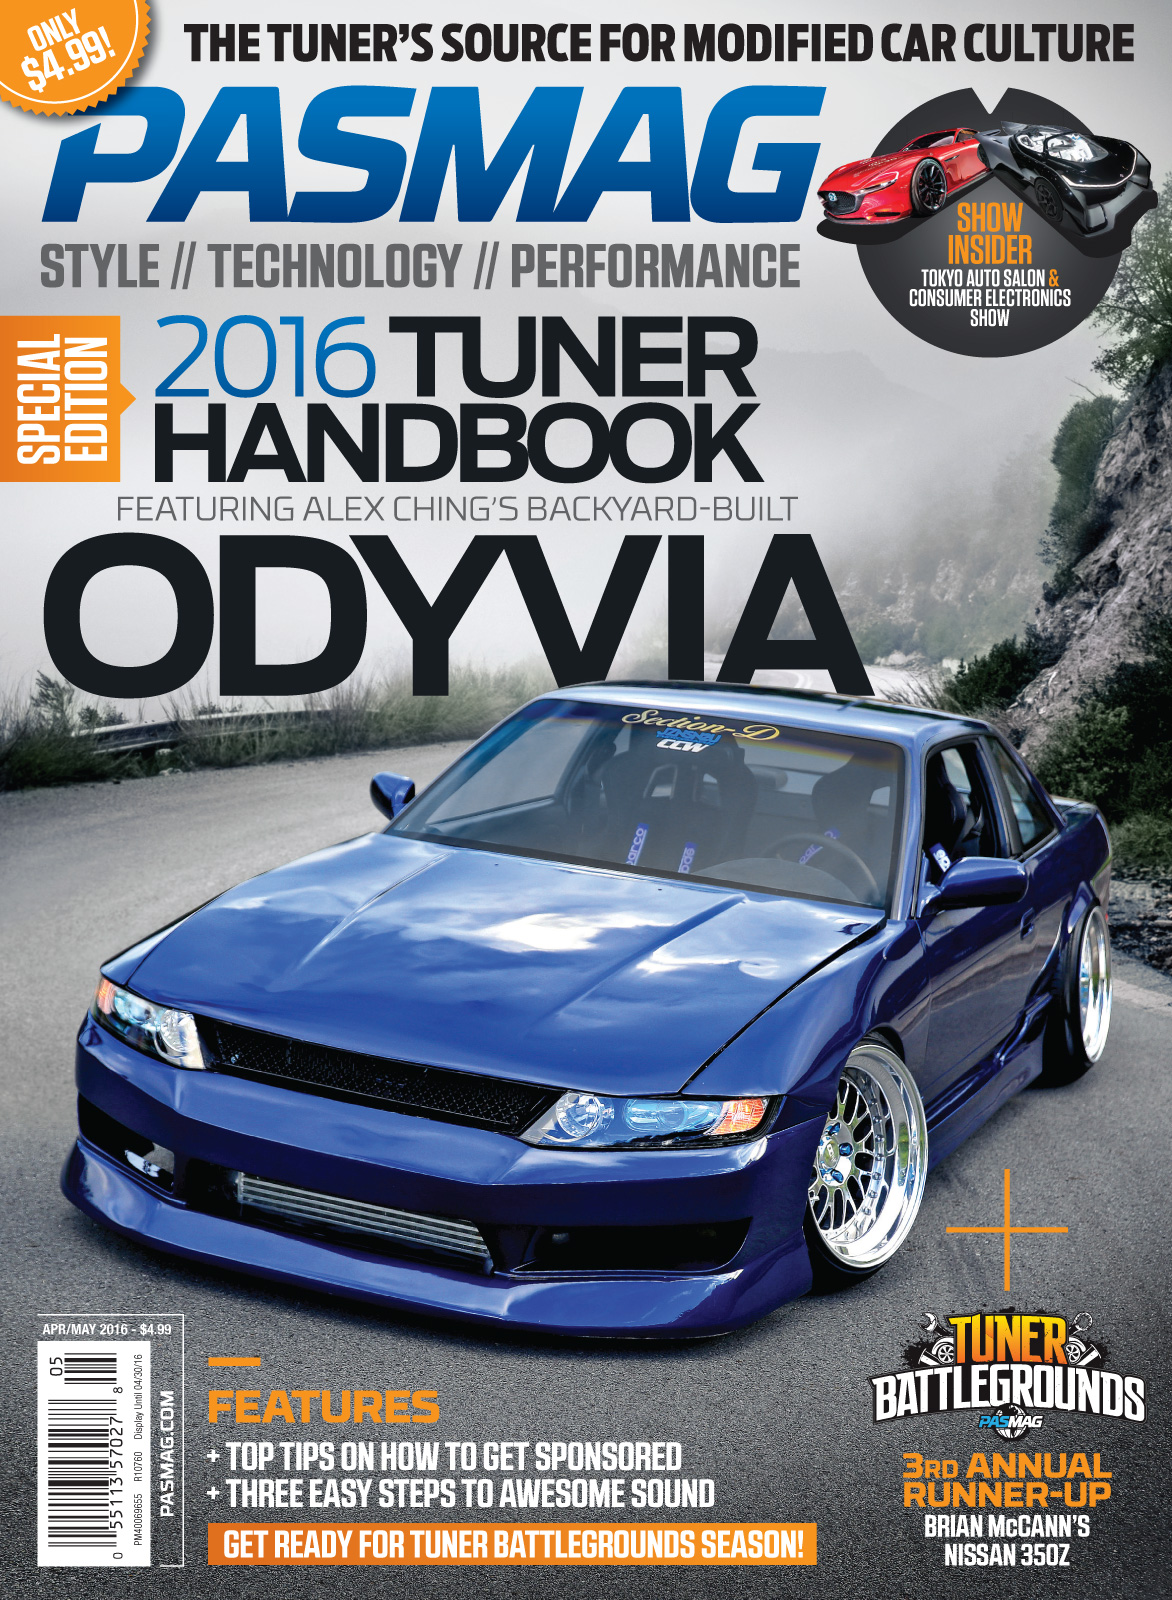 PASMAG 136 April May Cover USA